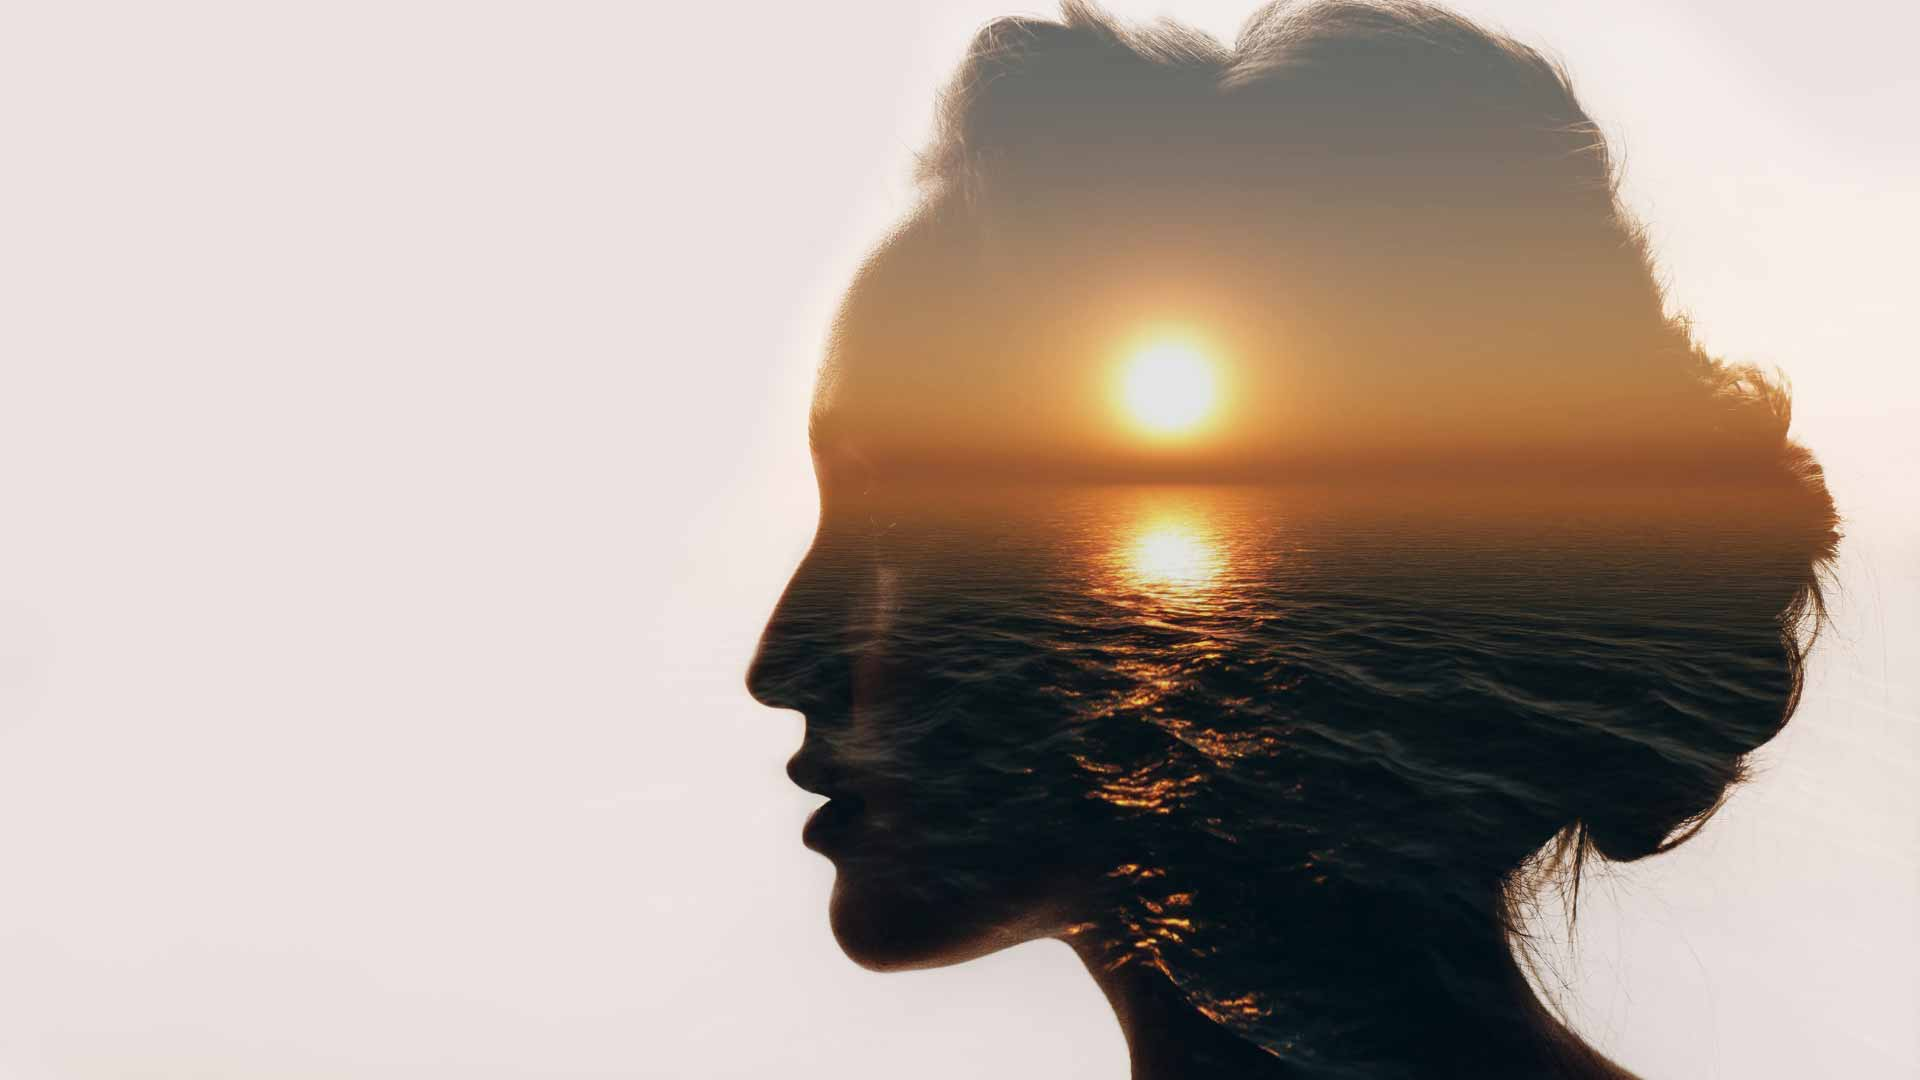 A photo of a woman's head with a sunset imposed in it